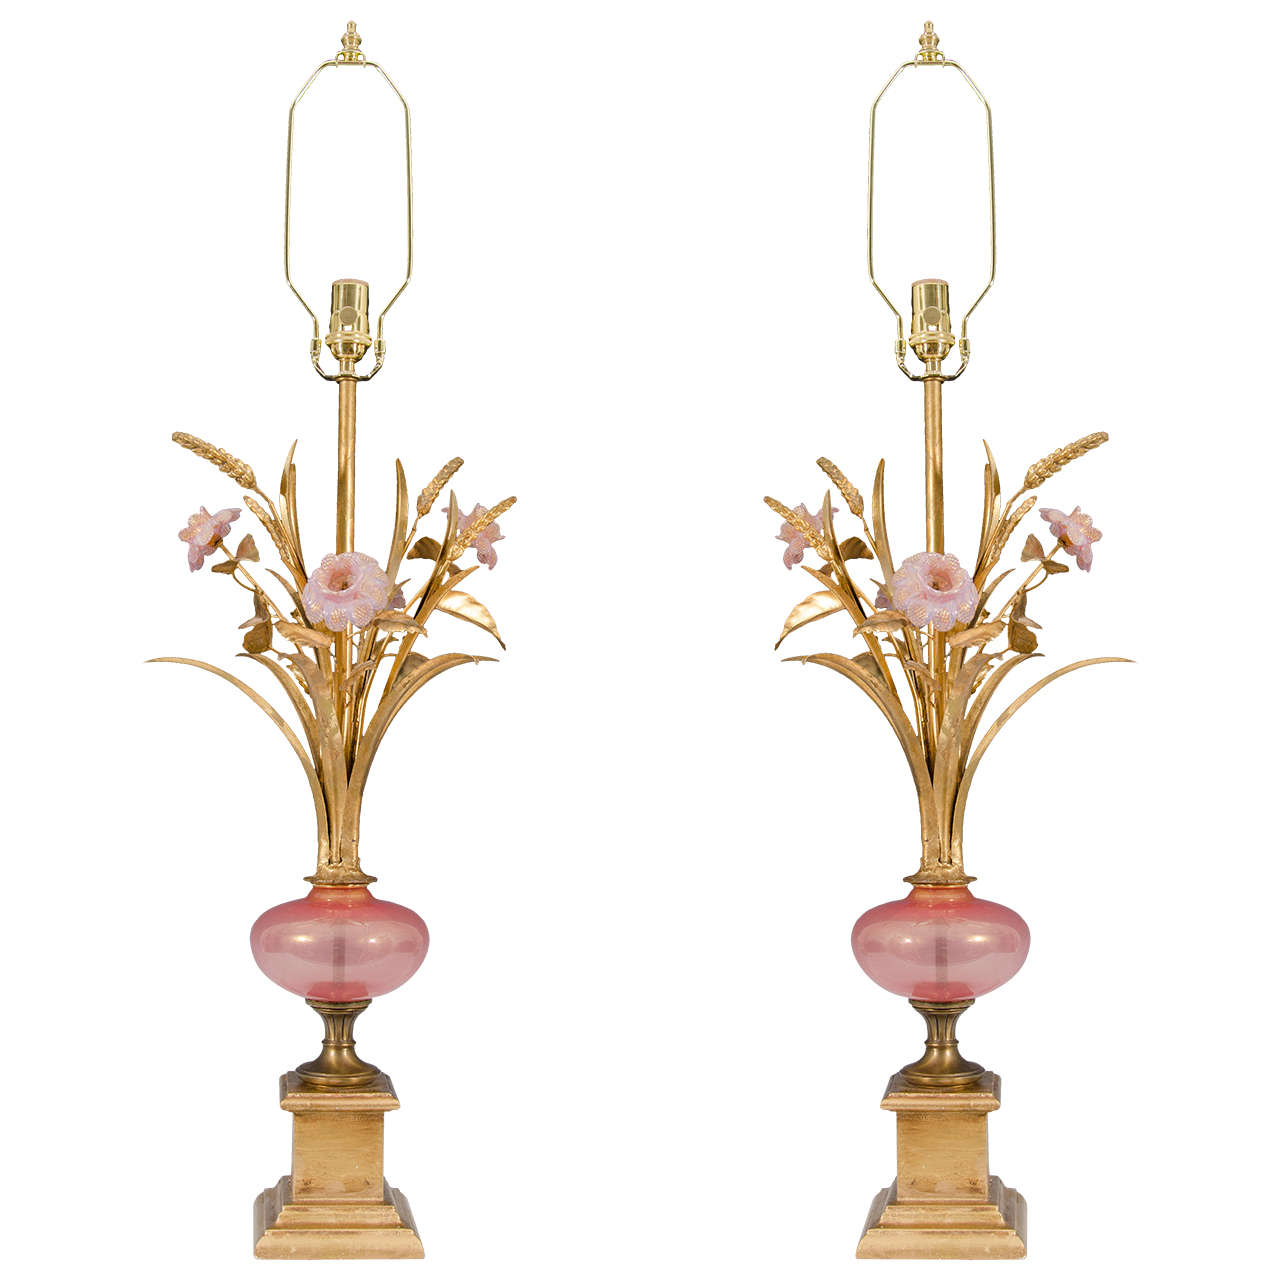 Midcentury pair of murano glass table lamps with pink flowers at midcentury pair of murano glass table lamps with pink flowers for sale aloadofball Image collections